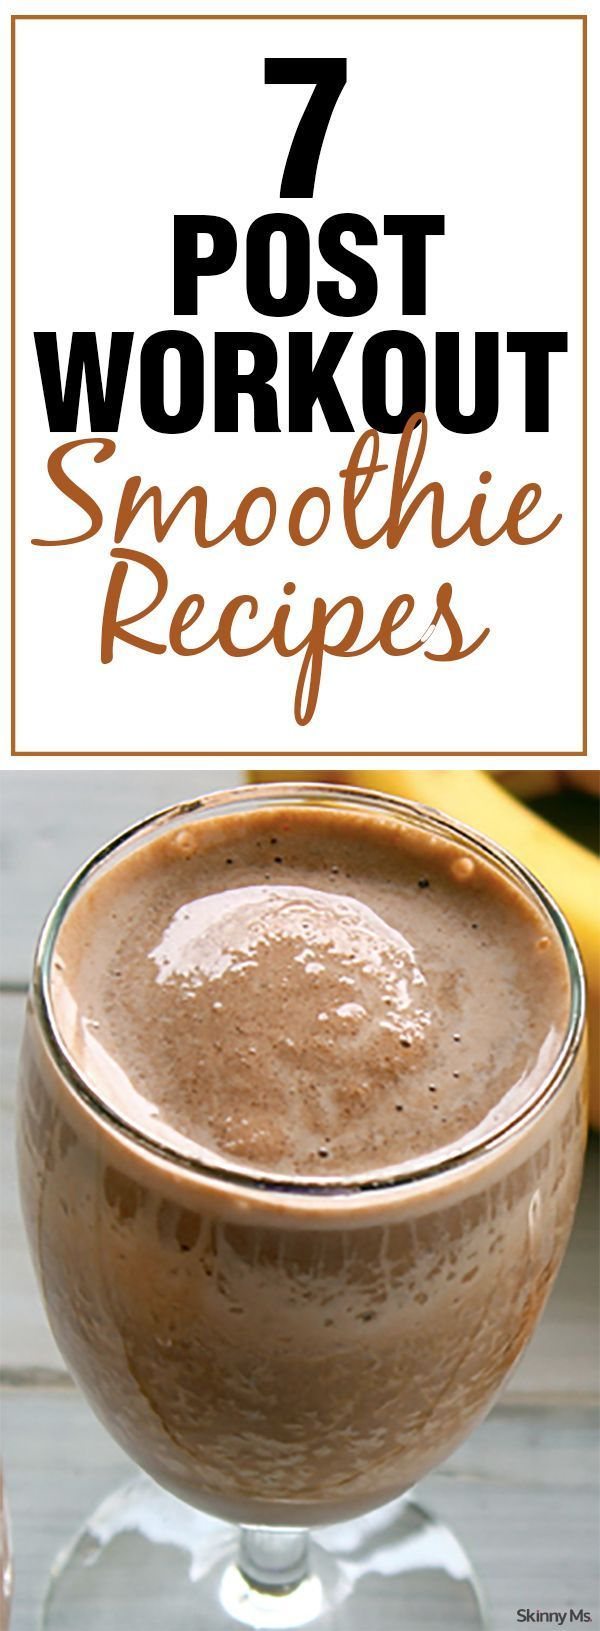 Give your body the nutrients it needs after a long, difficult workout with these 7 Post Workout Smoothie Recipes.